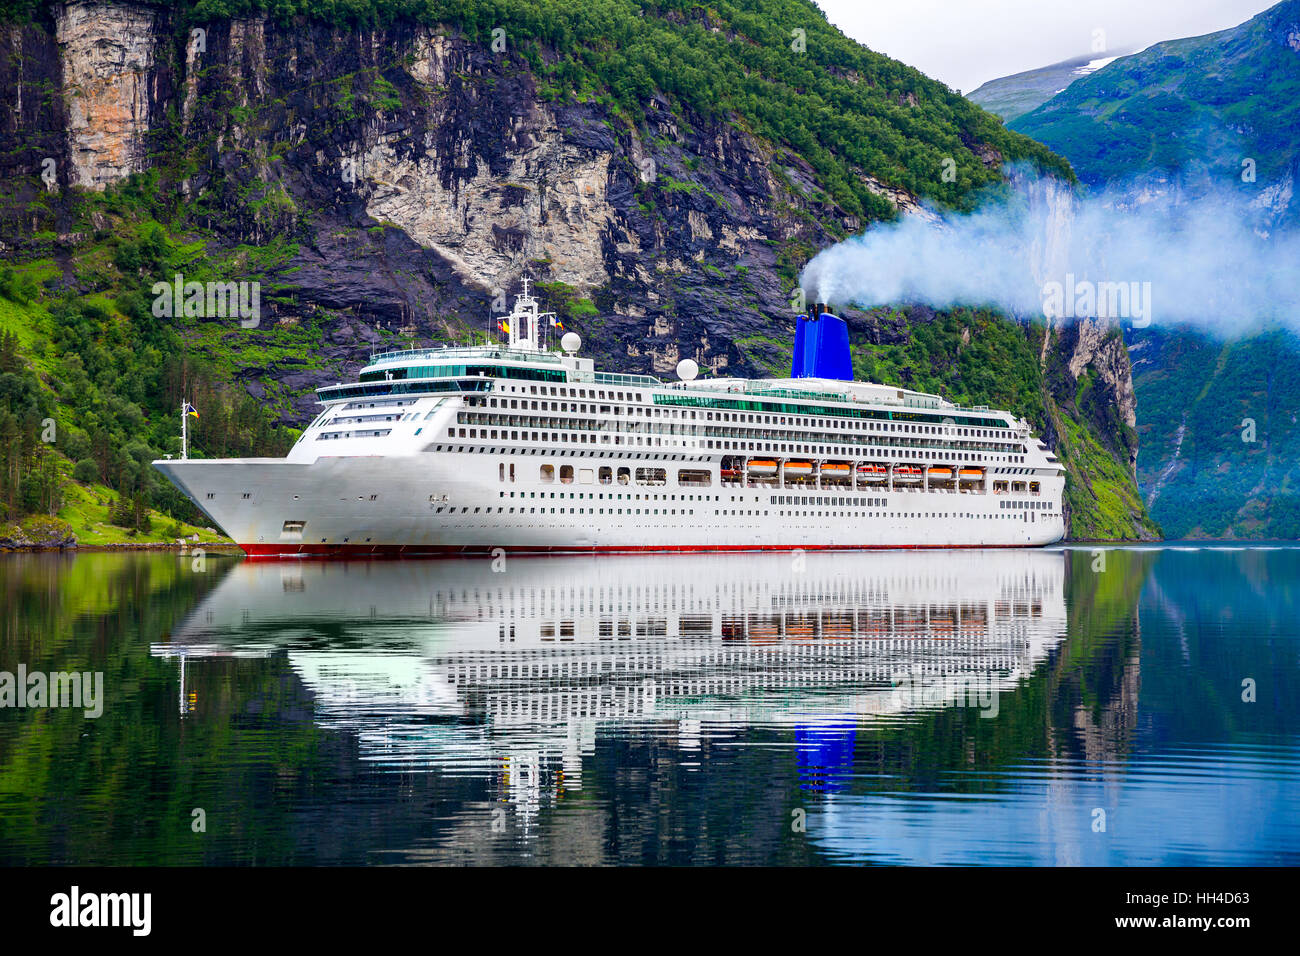 Cruise Ship, Cruise Liners On Geiranger fjord, Norway - Stock Image